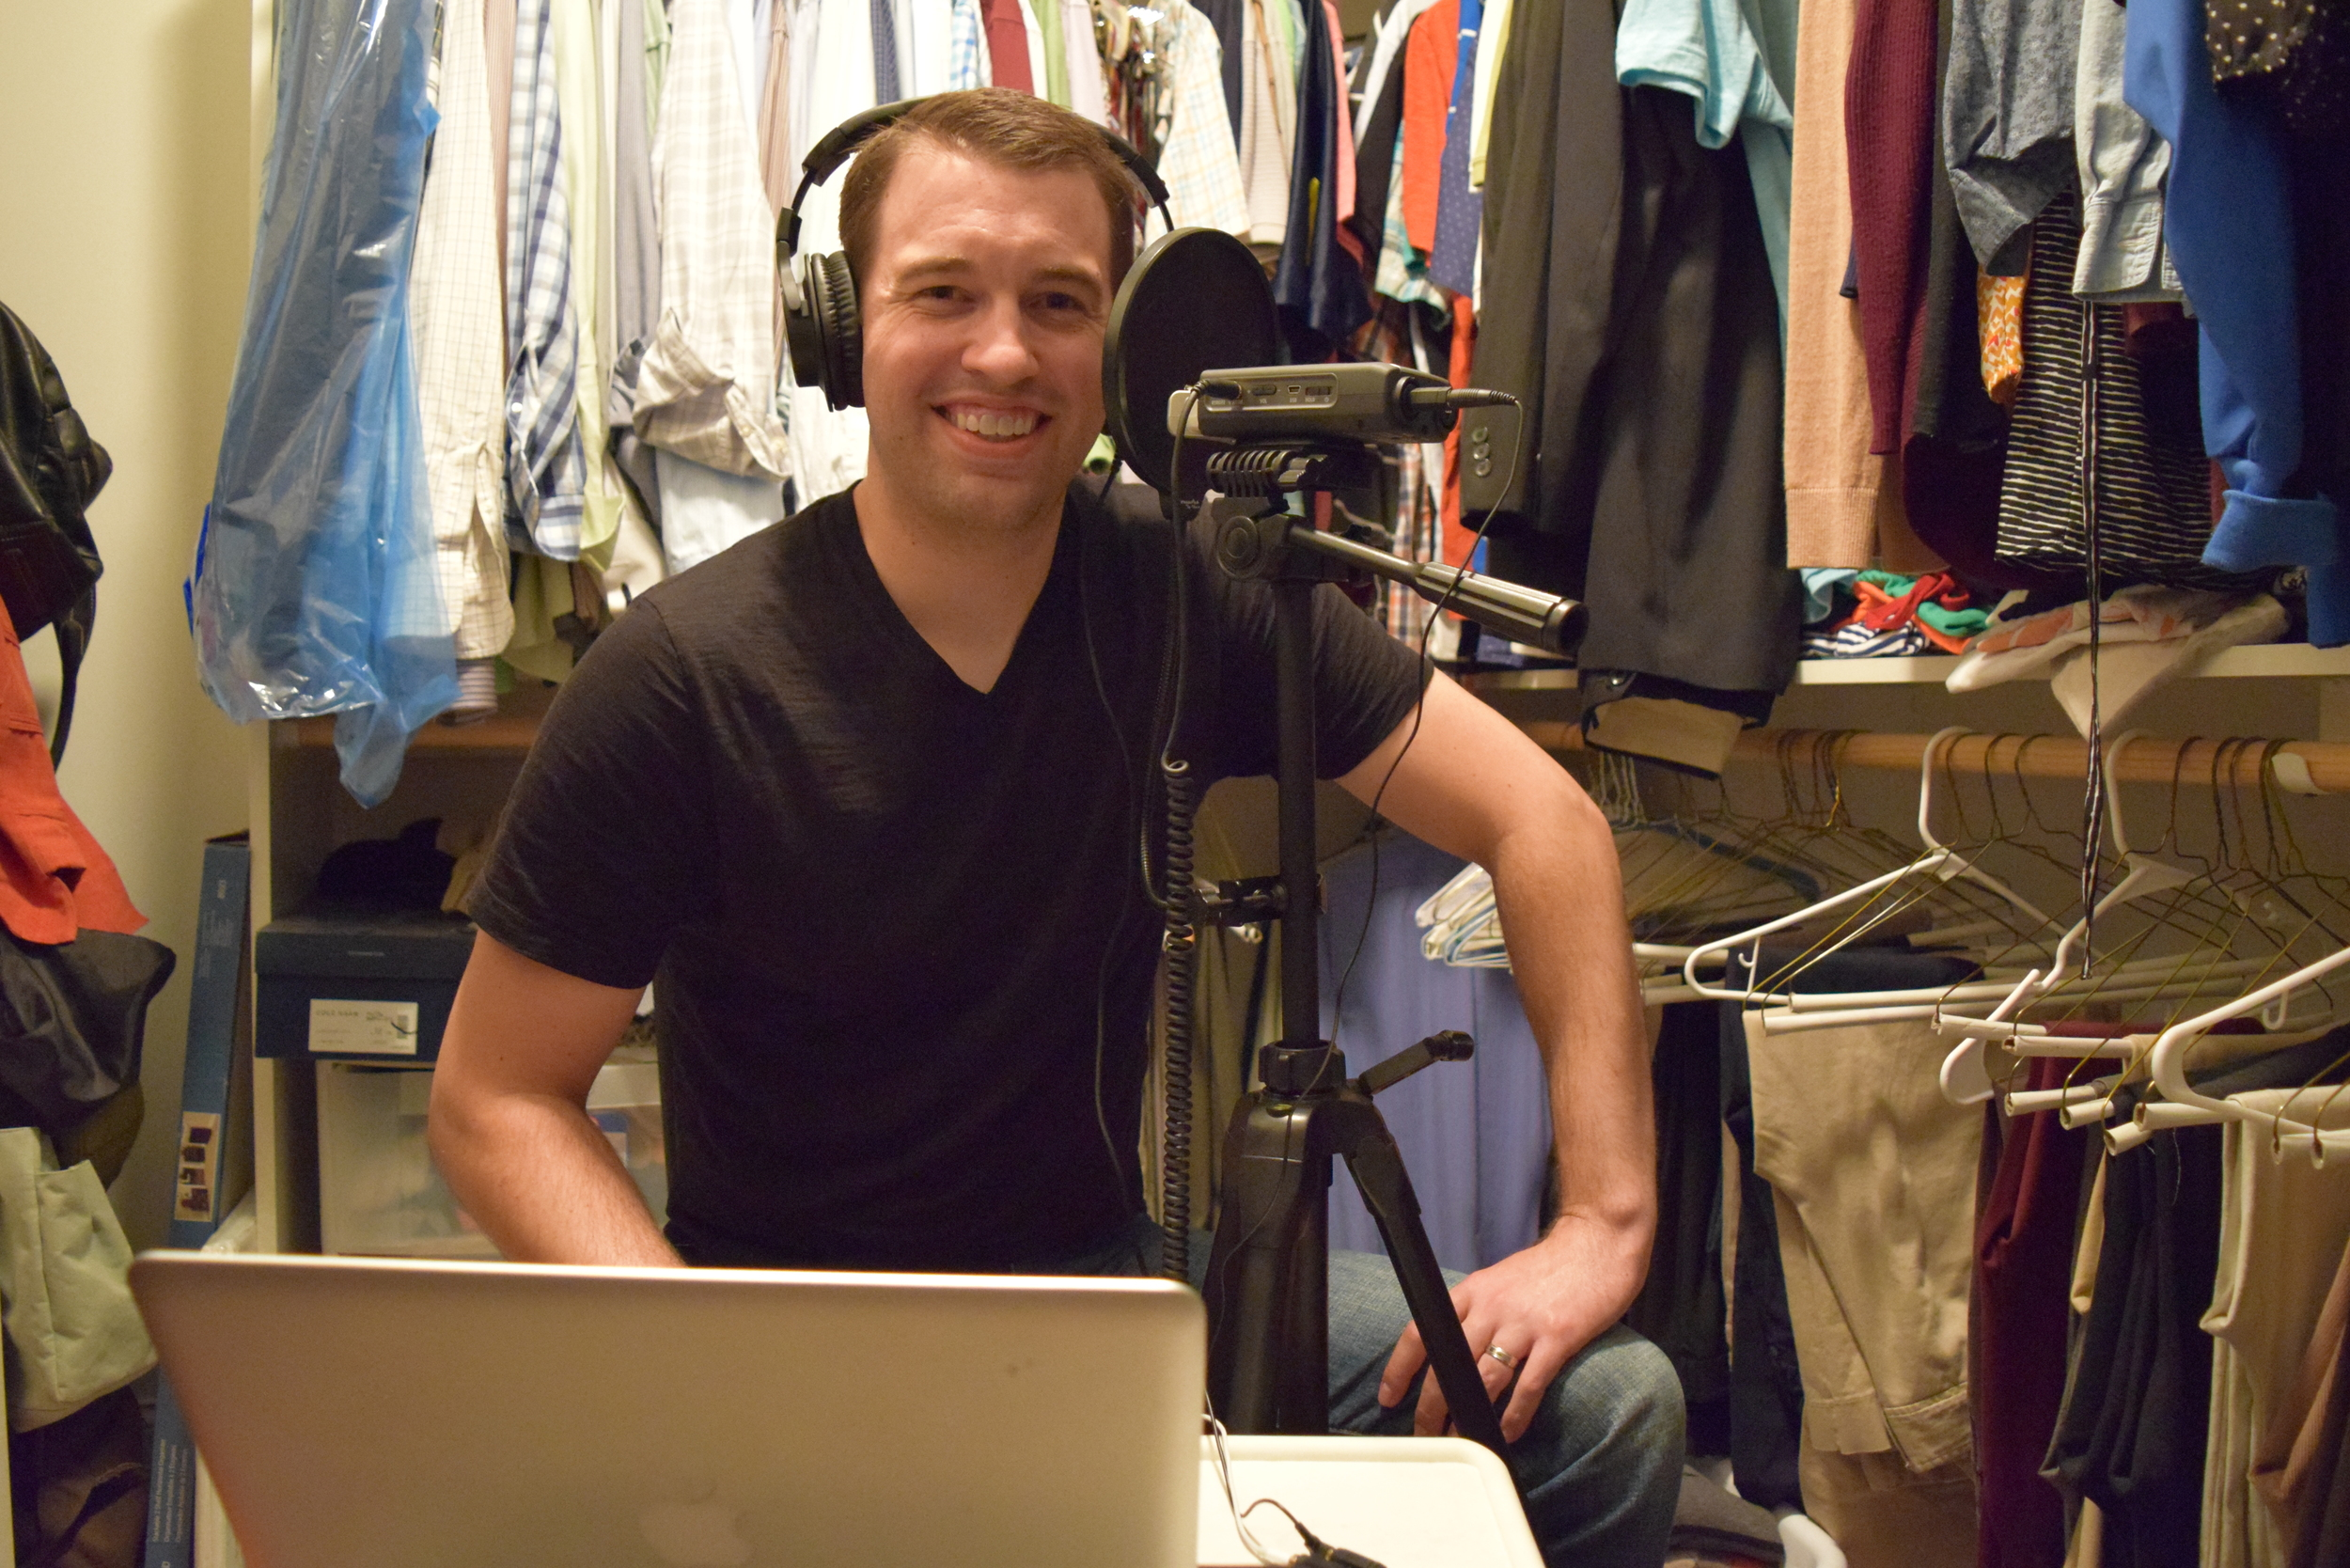 Yes, I am recording in my walk-in closet. It's by far the quietest room in the house, and the clothes actually do a great job of reducing echo. I wanted a picture of this first interview so I can compare someday when I've made some equipment upgrades.